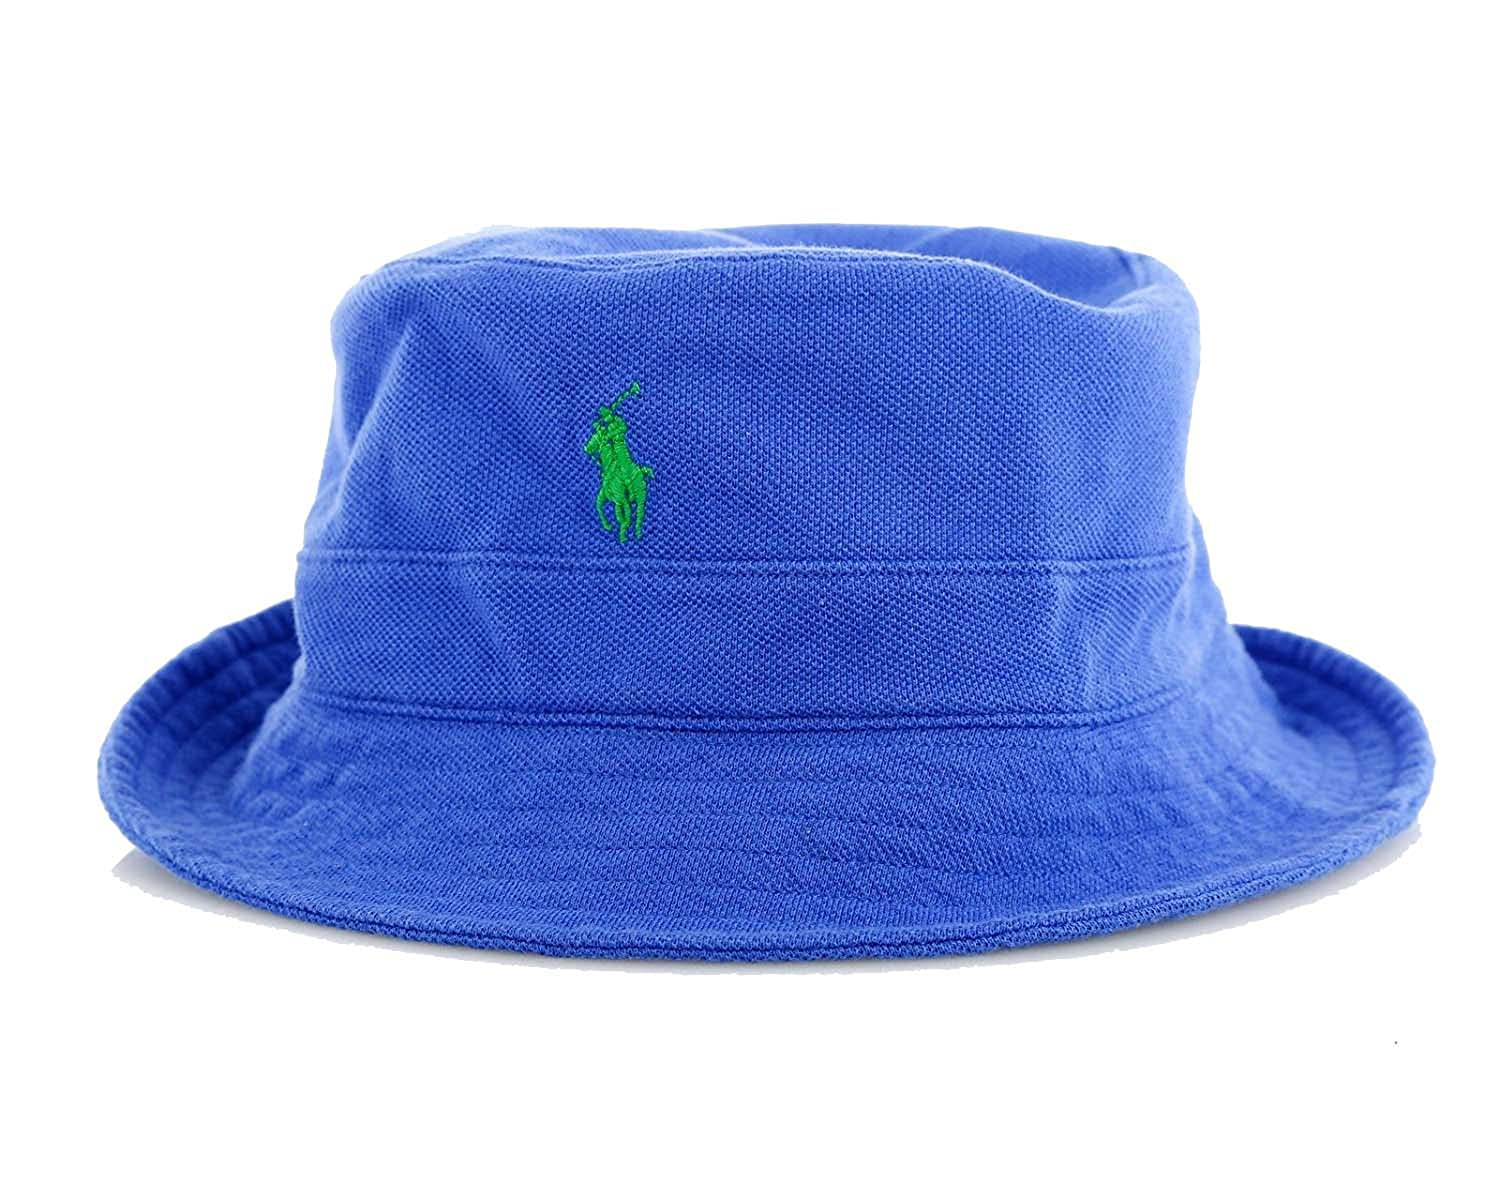 b7f50a325 RALPH LAUREN Polo Mens Pique Mesh Bucket Hat